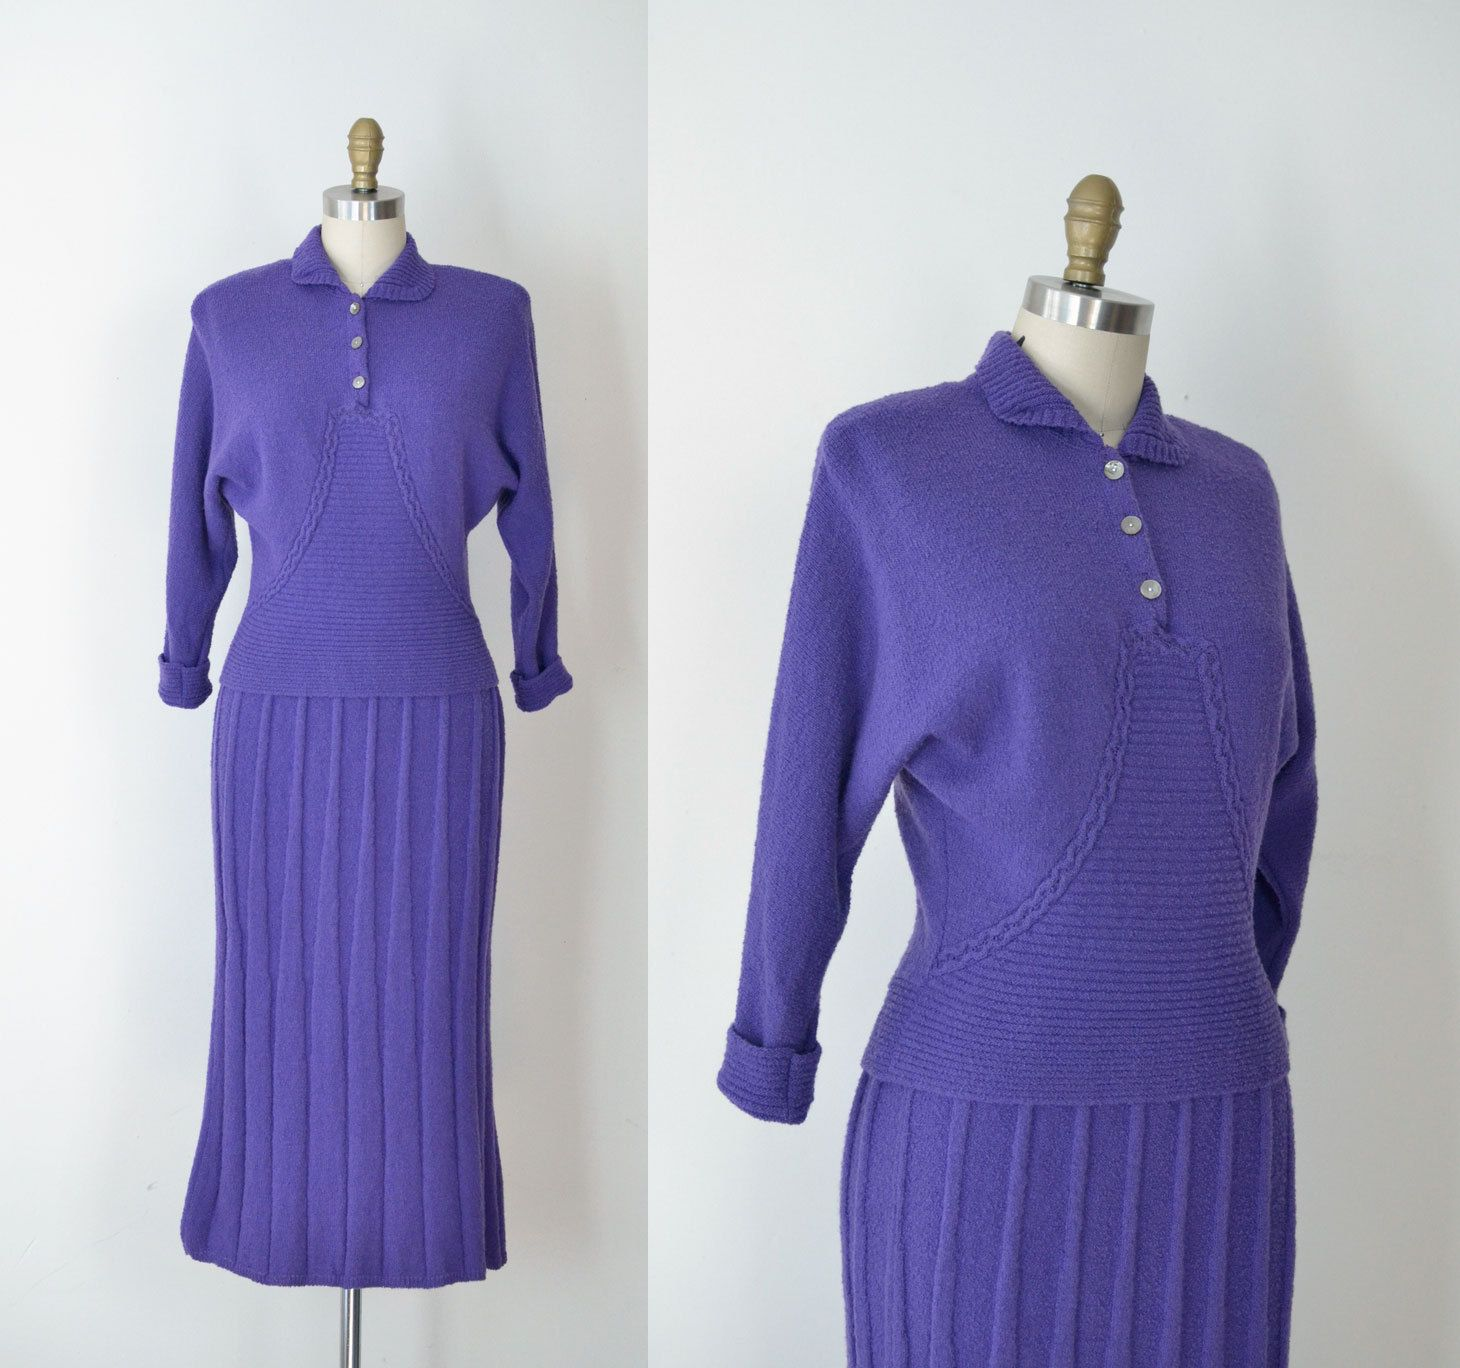 1940s Wool Knit Skirt Suit / 40s 50s Purple Sweater Dress